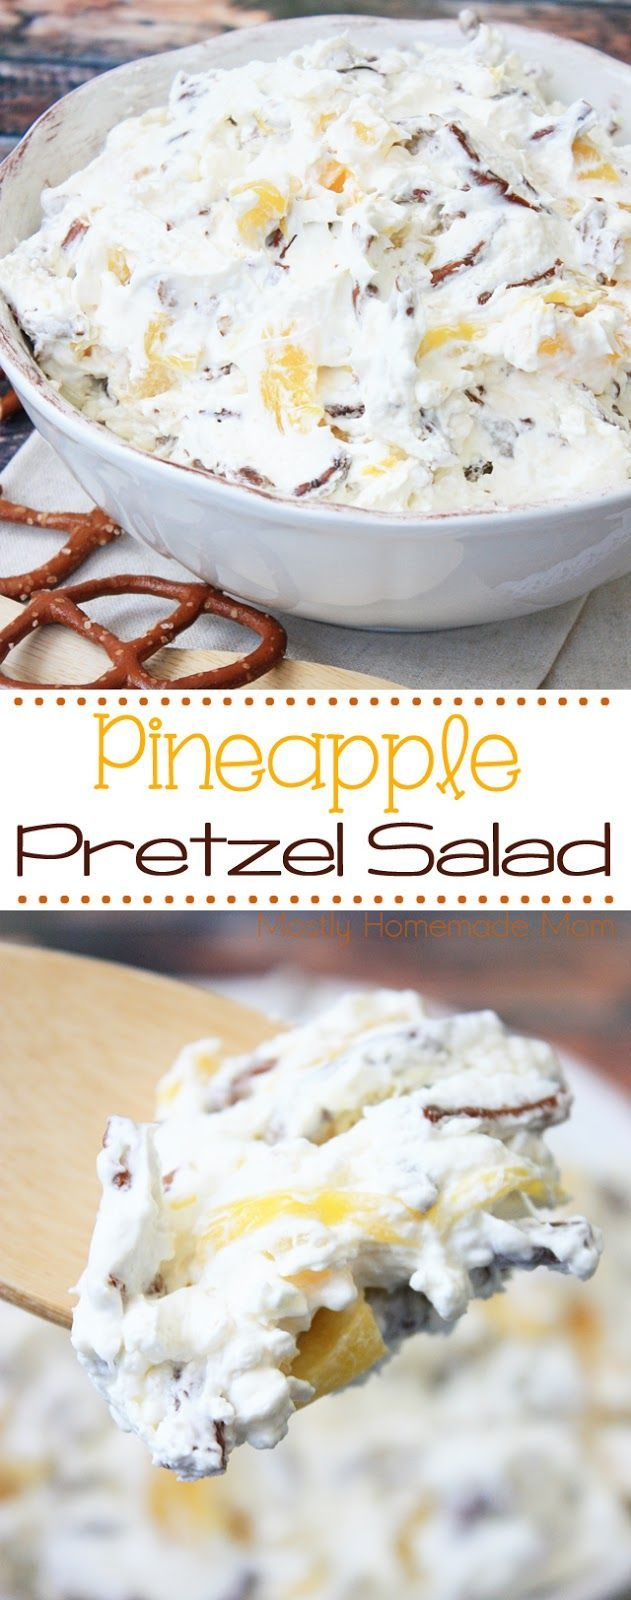 Pineapple Pretzel Salad - the perfect mix of salty and sweet! Salty pretzels mixed with cream cheese, whipped cream, and pineapple chunks - this is a perfect dessert for parties!